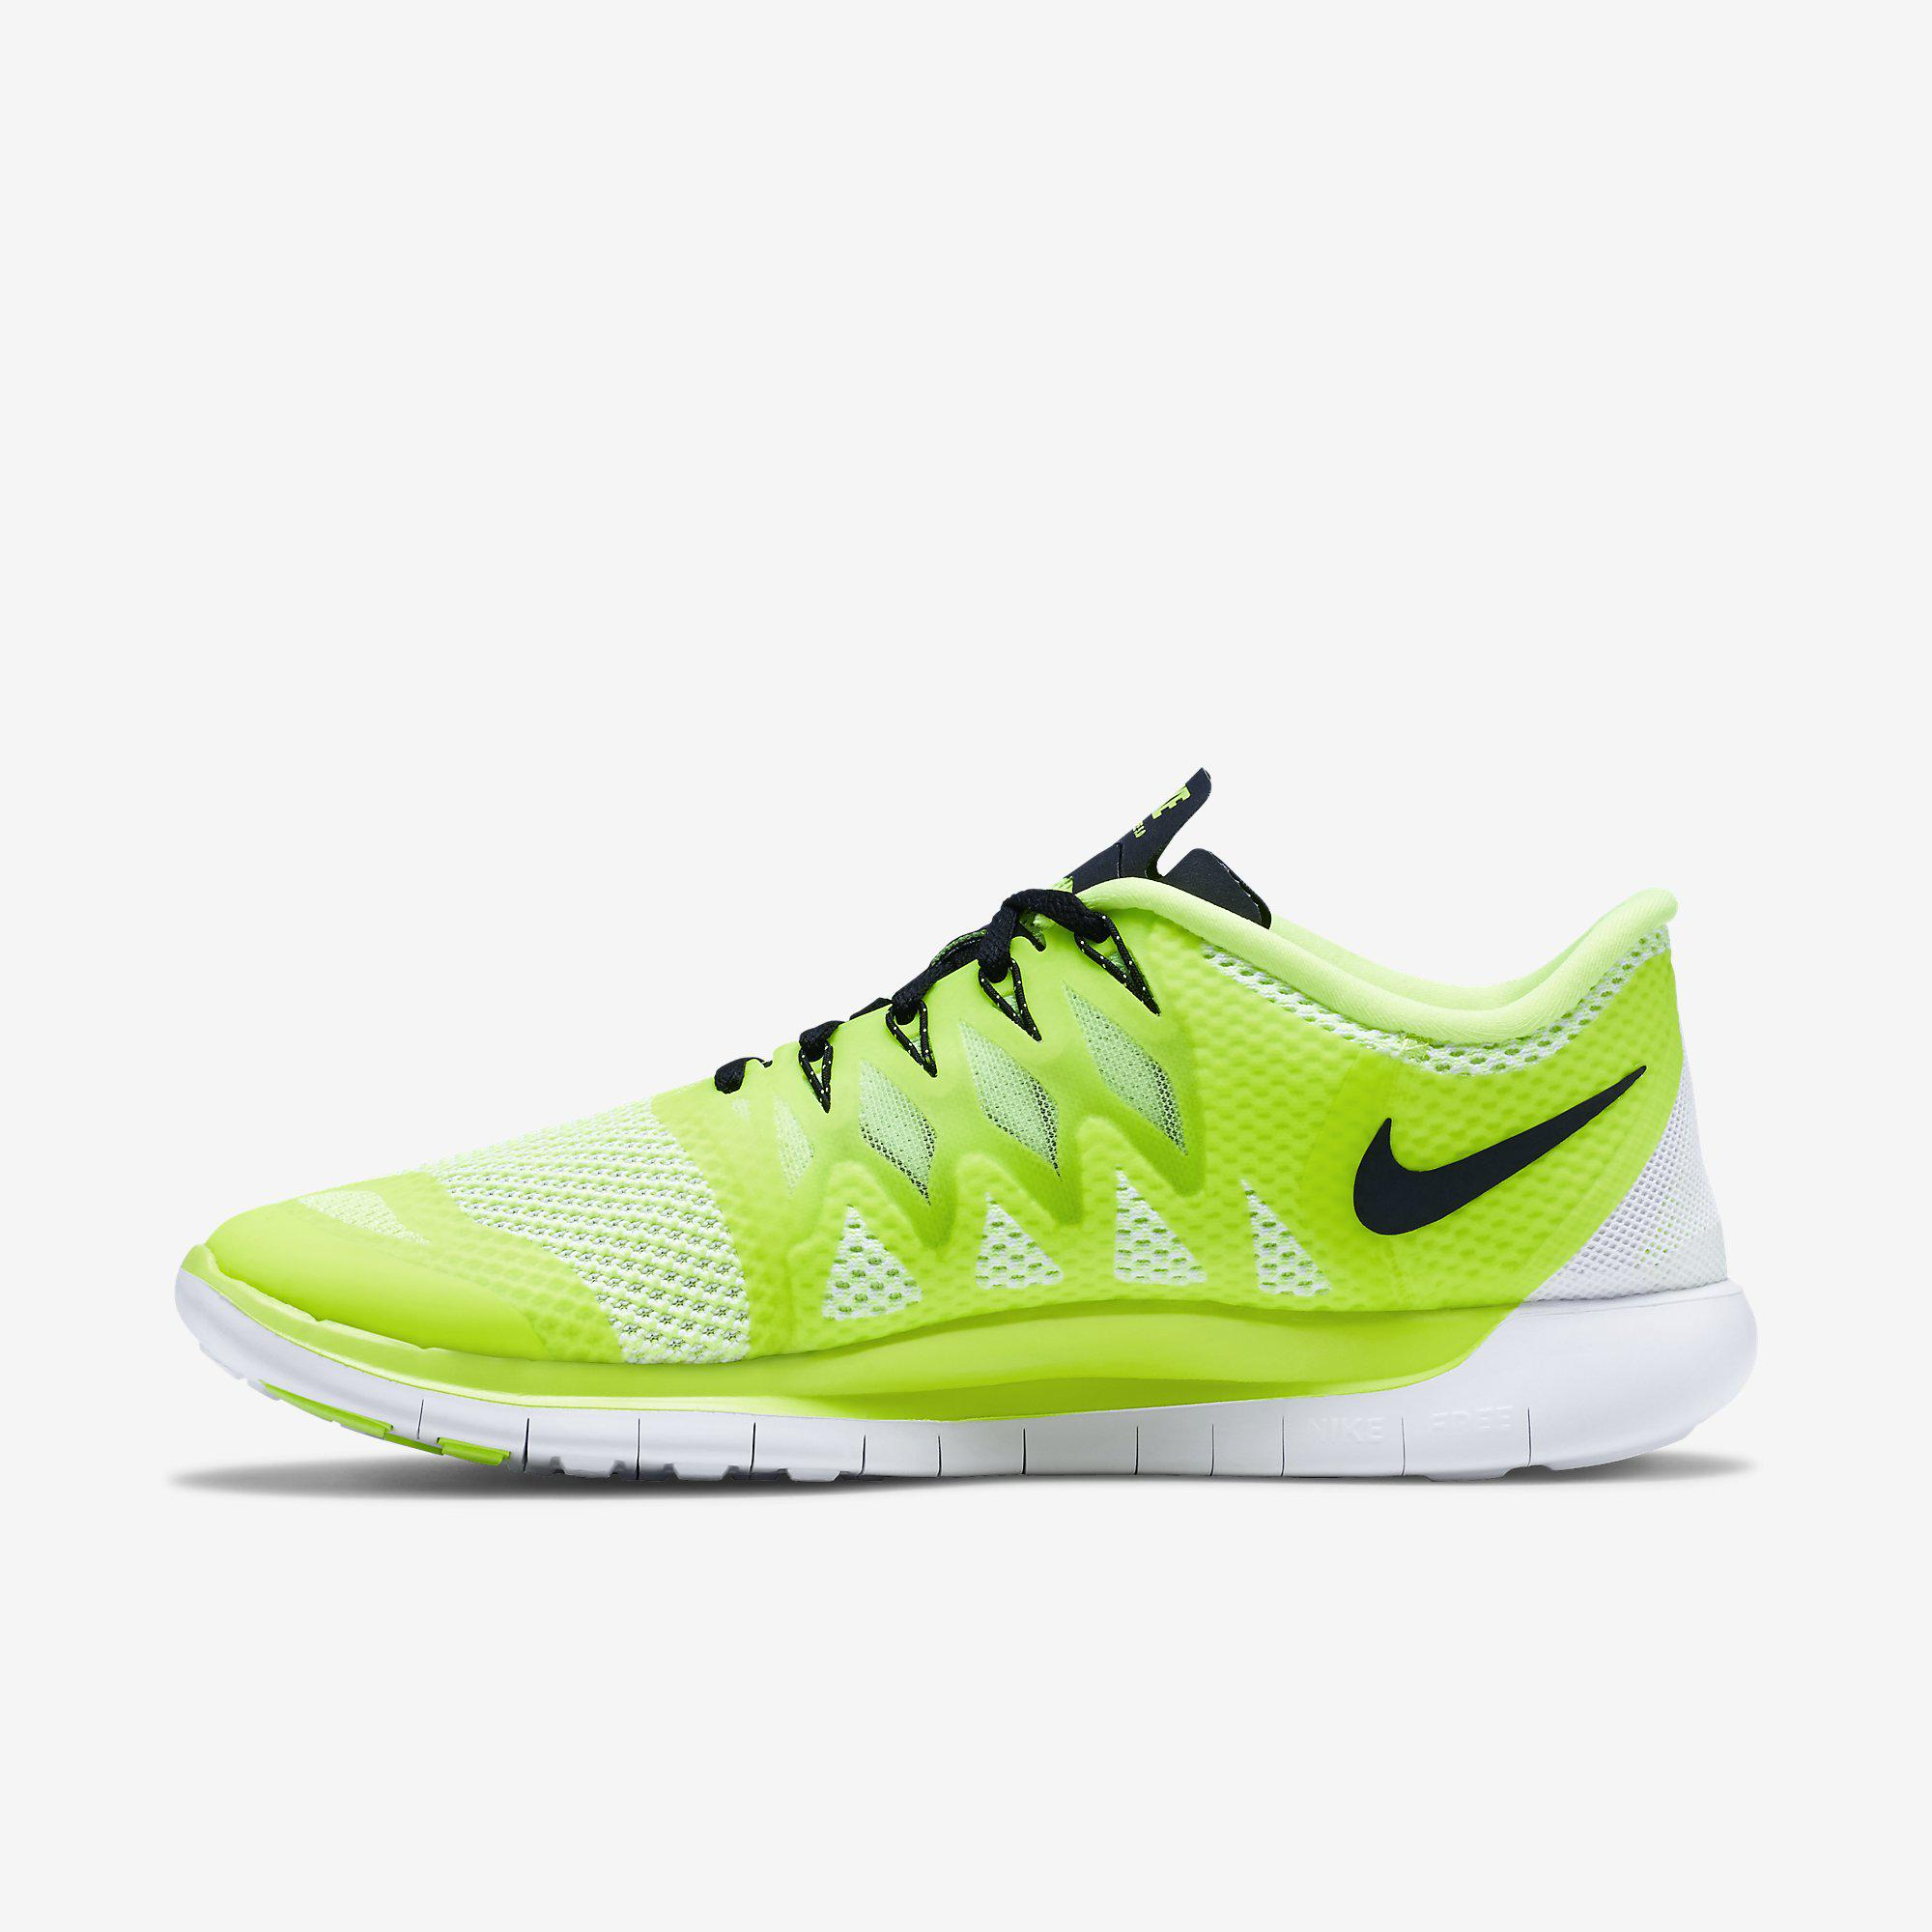 Out Of Stock. Nike Mens Free 5.0+ Running Shoes ...